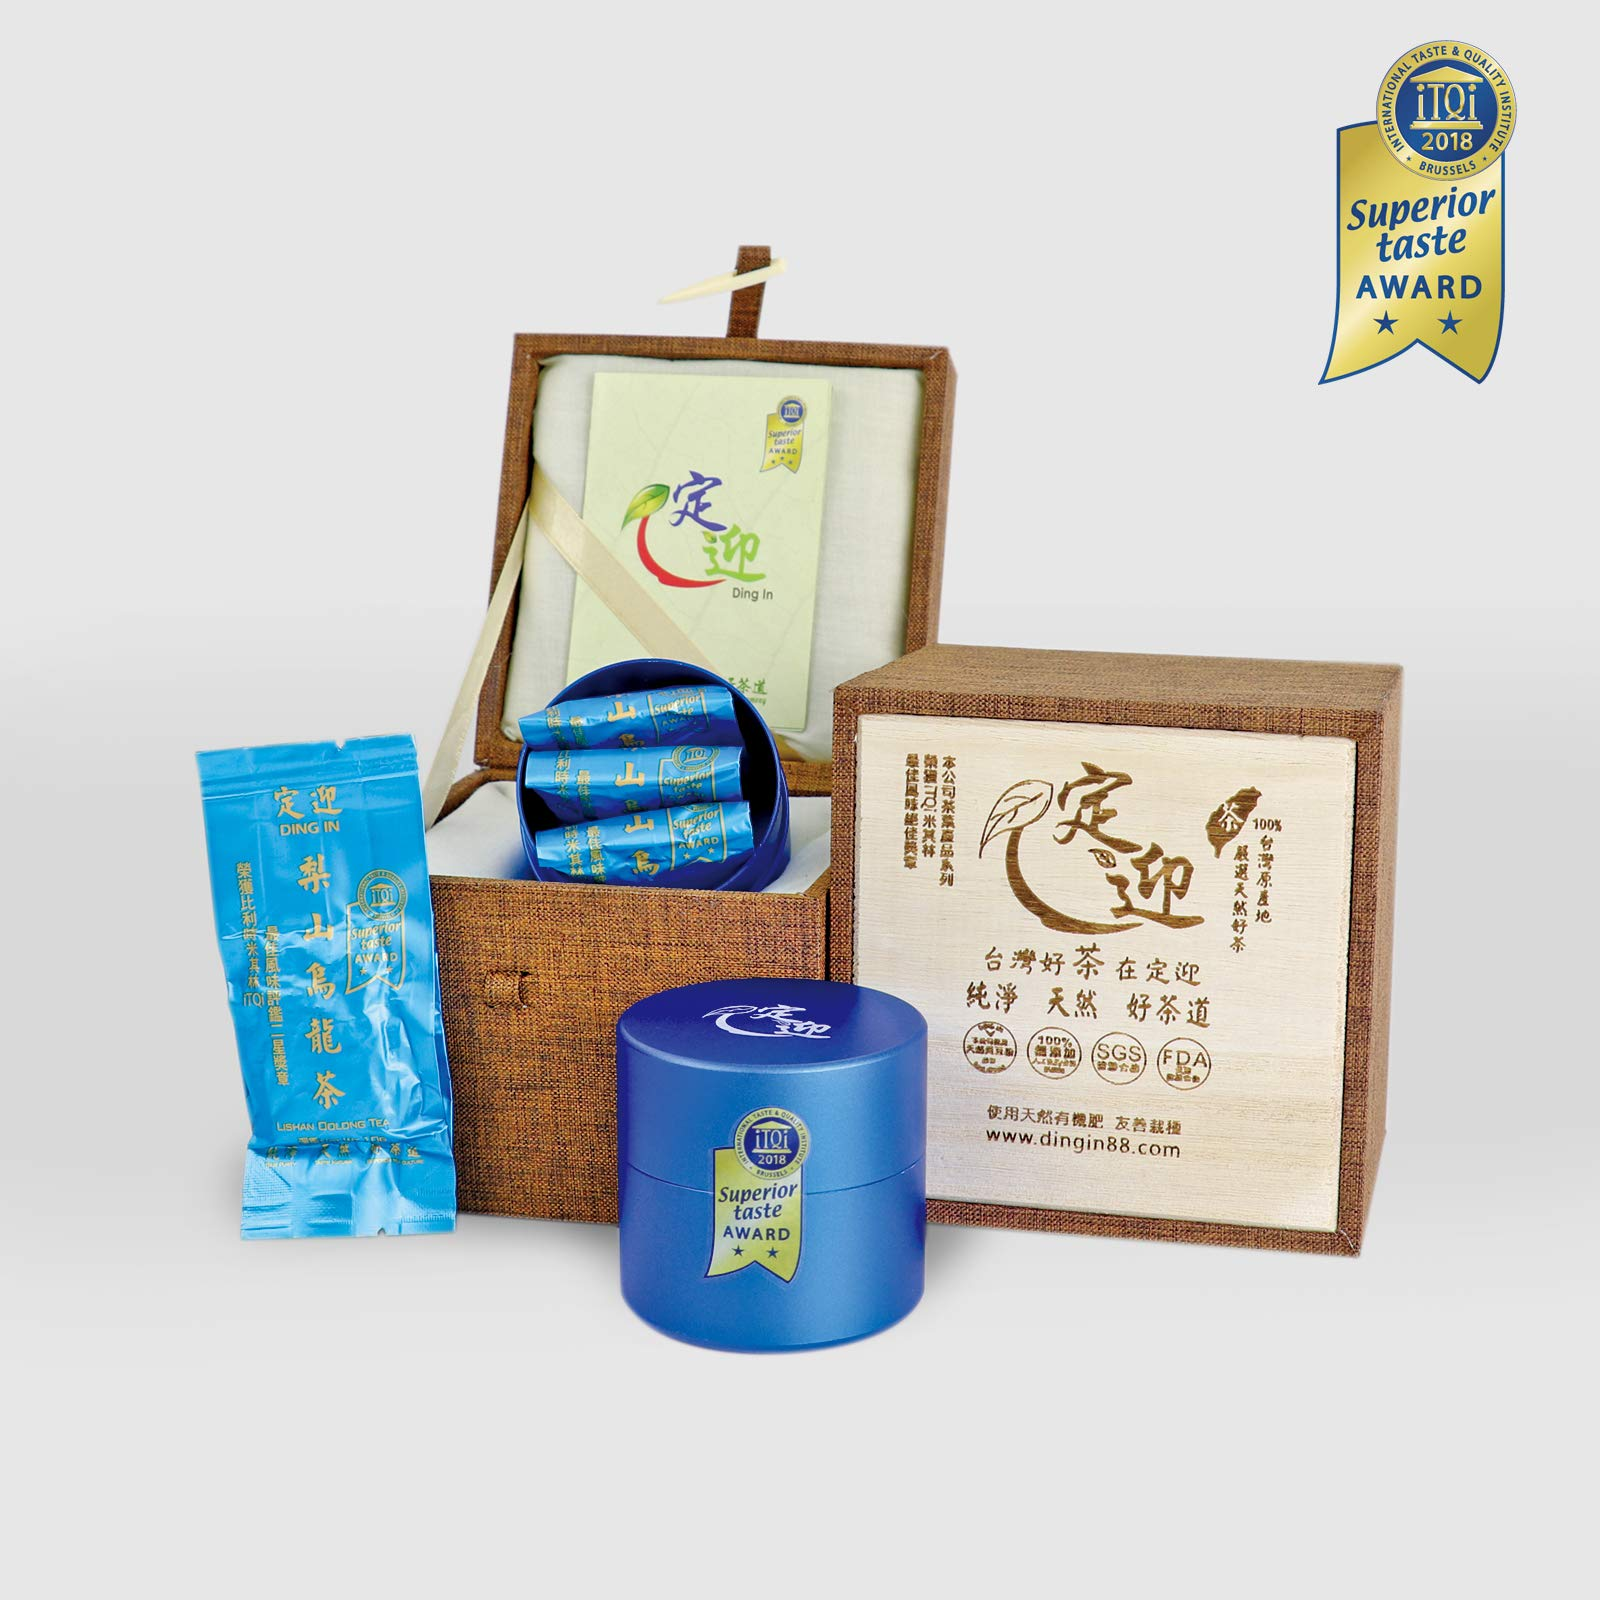 DING IN Lishan Oolong Tea Horn Buckle Wooden Box 10g3bag/can X2 by Ding In ltd. (Image #1)